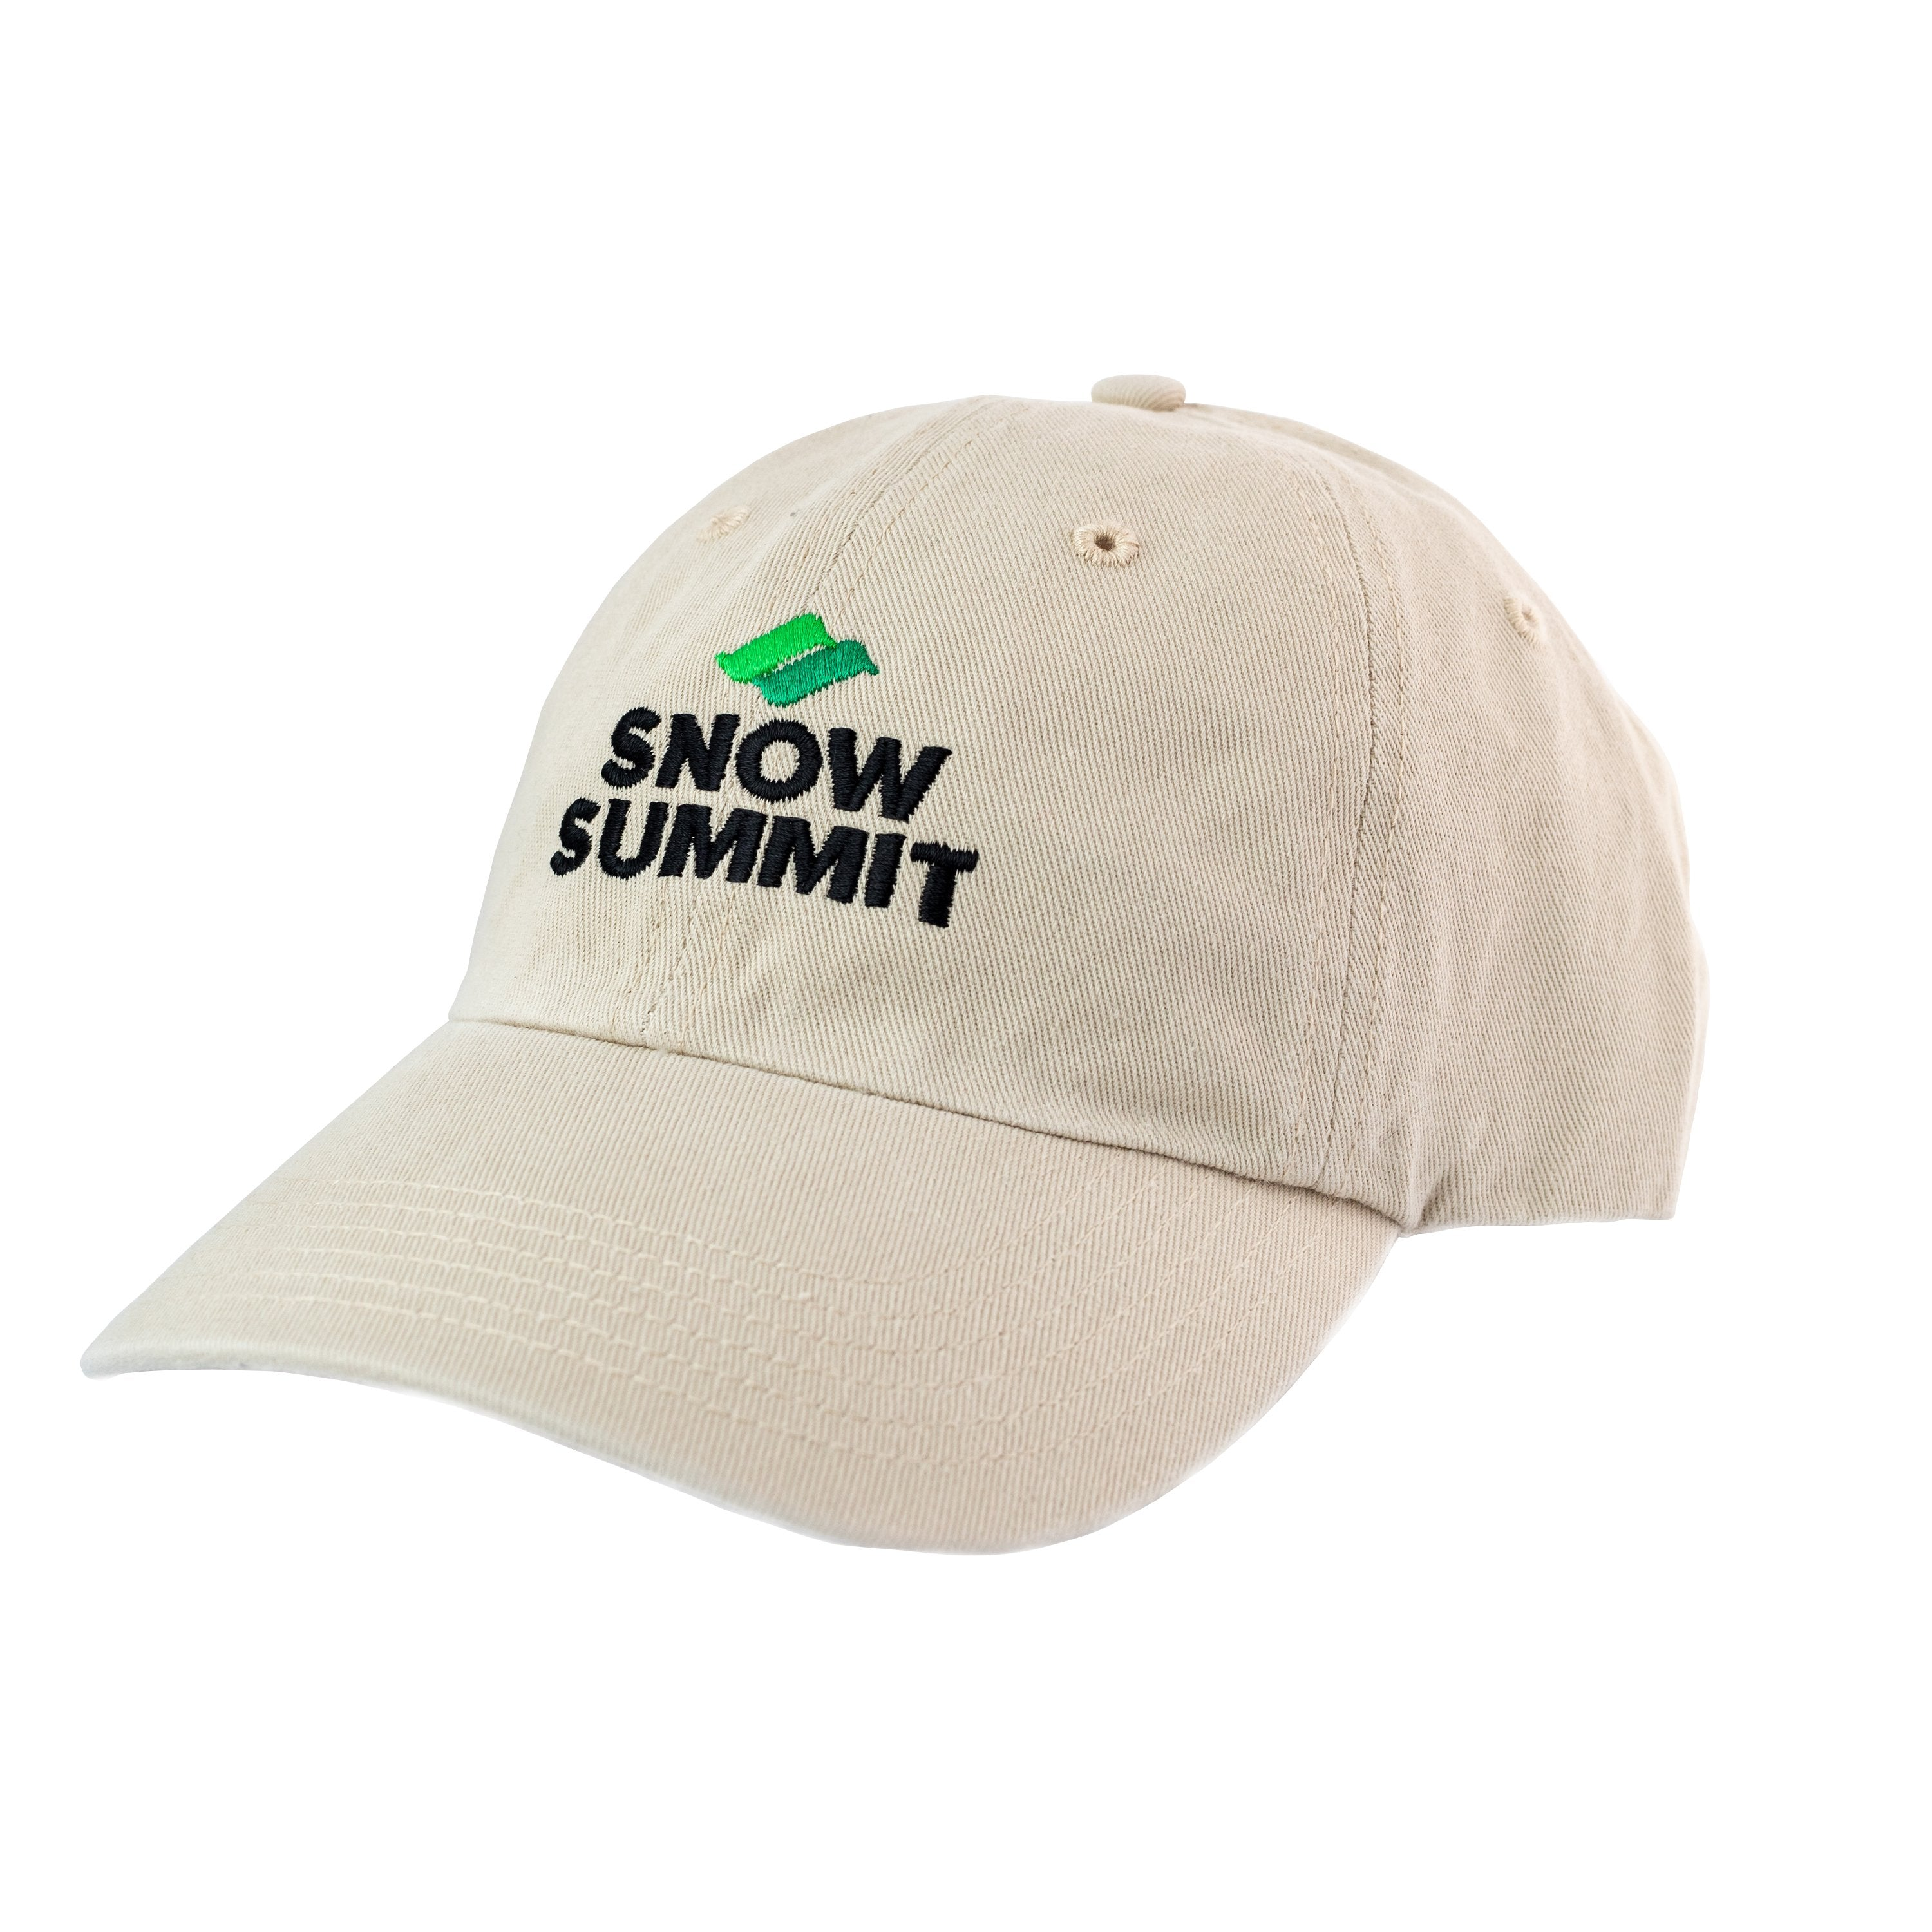 Stone Cap with Embroidered Snow Summit Logo